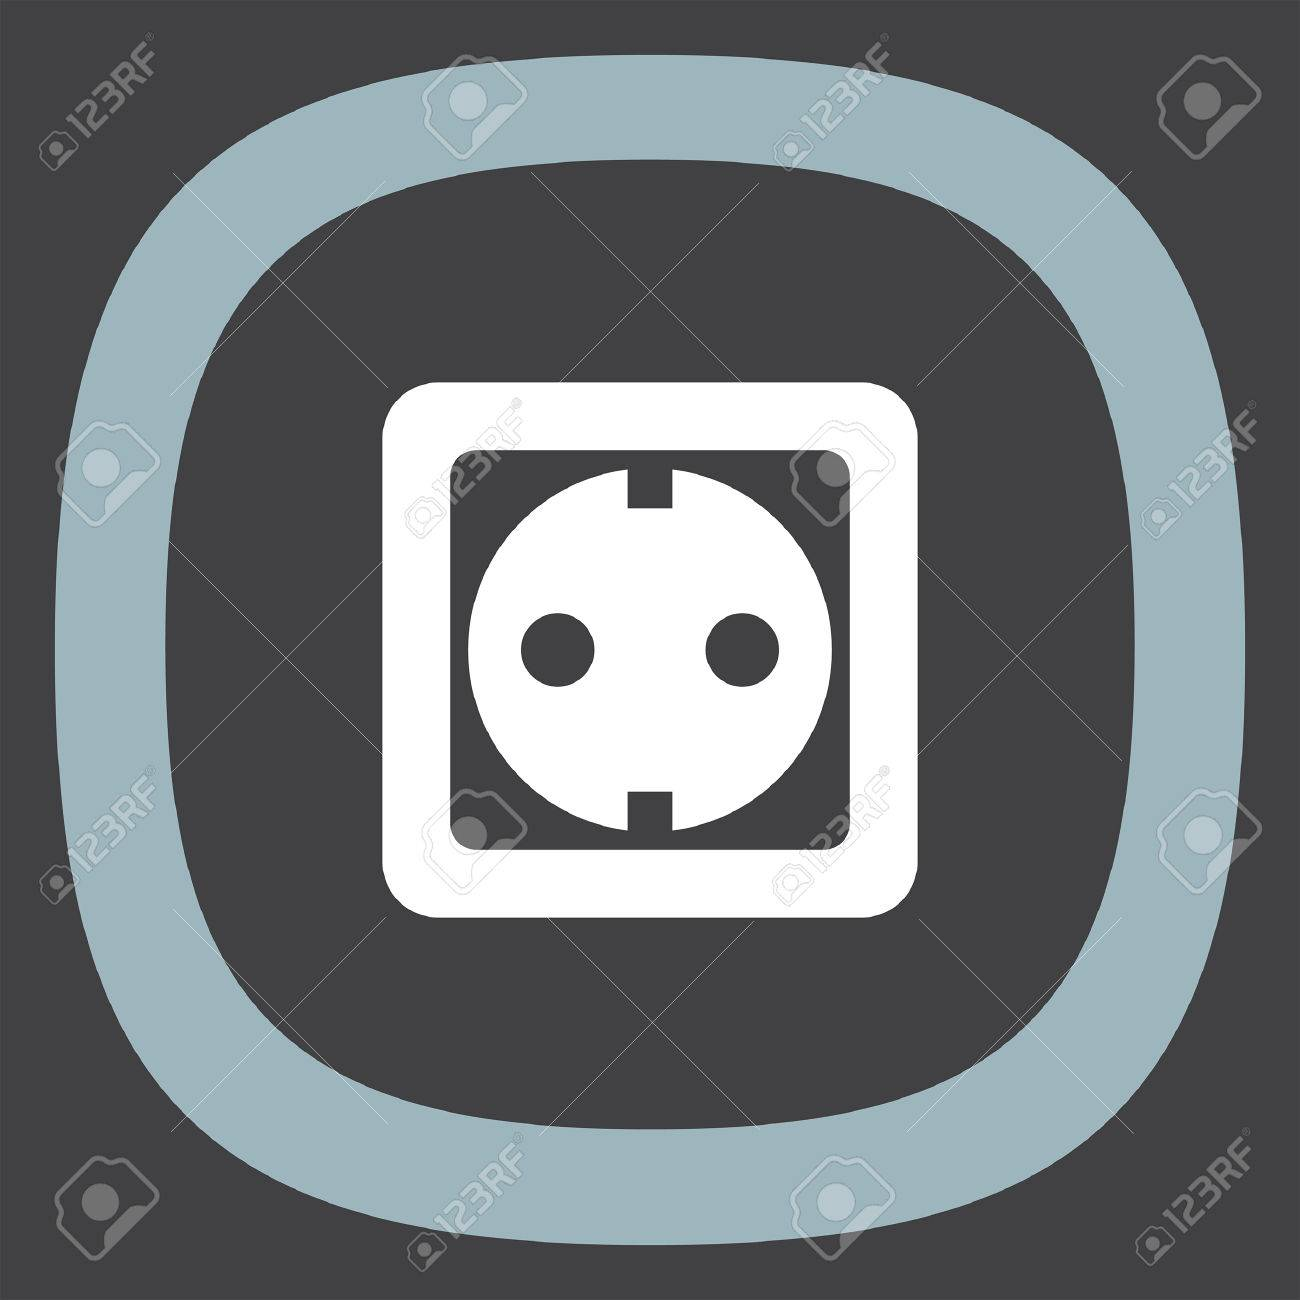 Power Socket Vector Icon. Electric Outlet Sign. Power Plug Symbol ...